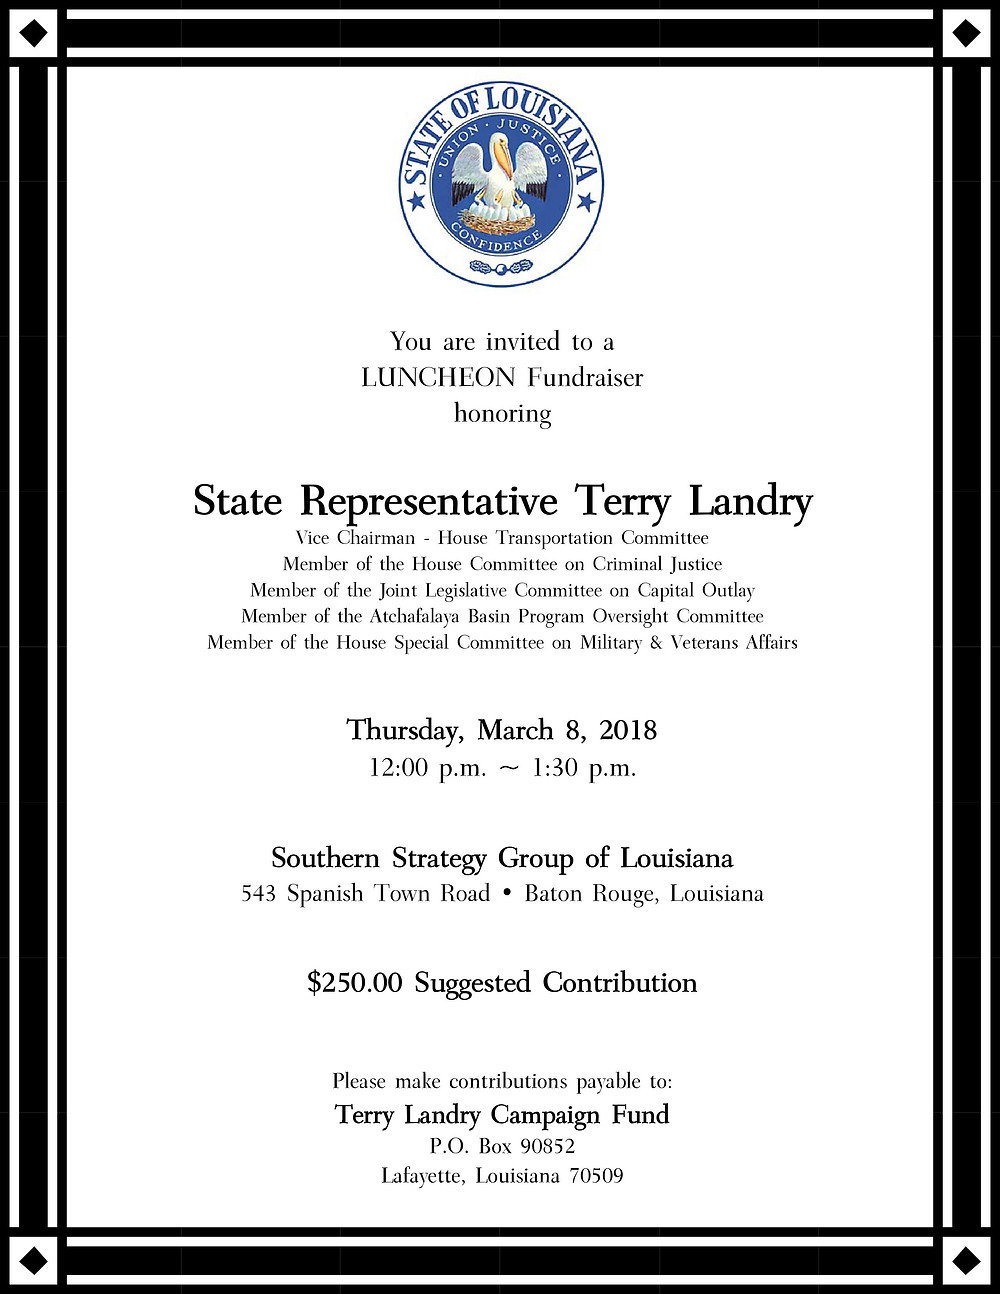 Hosted by Southern Strategy Group of Louisiana